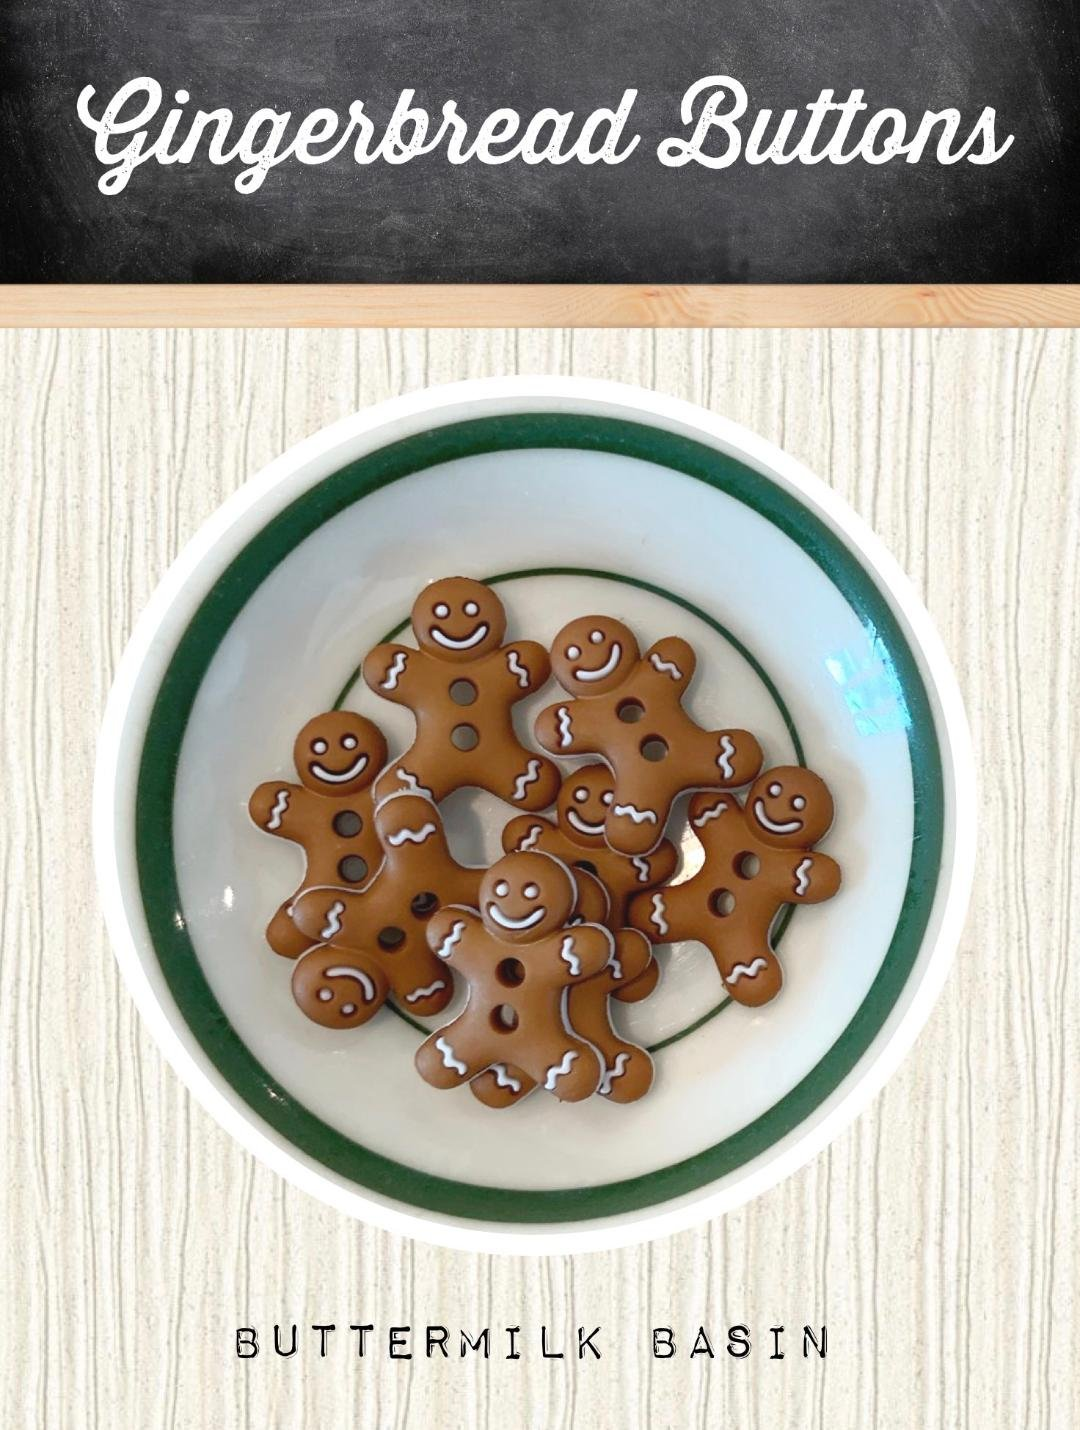 Gingerbread Buttons